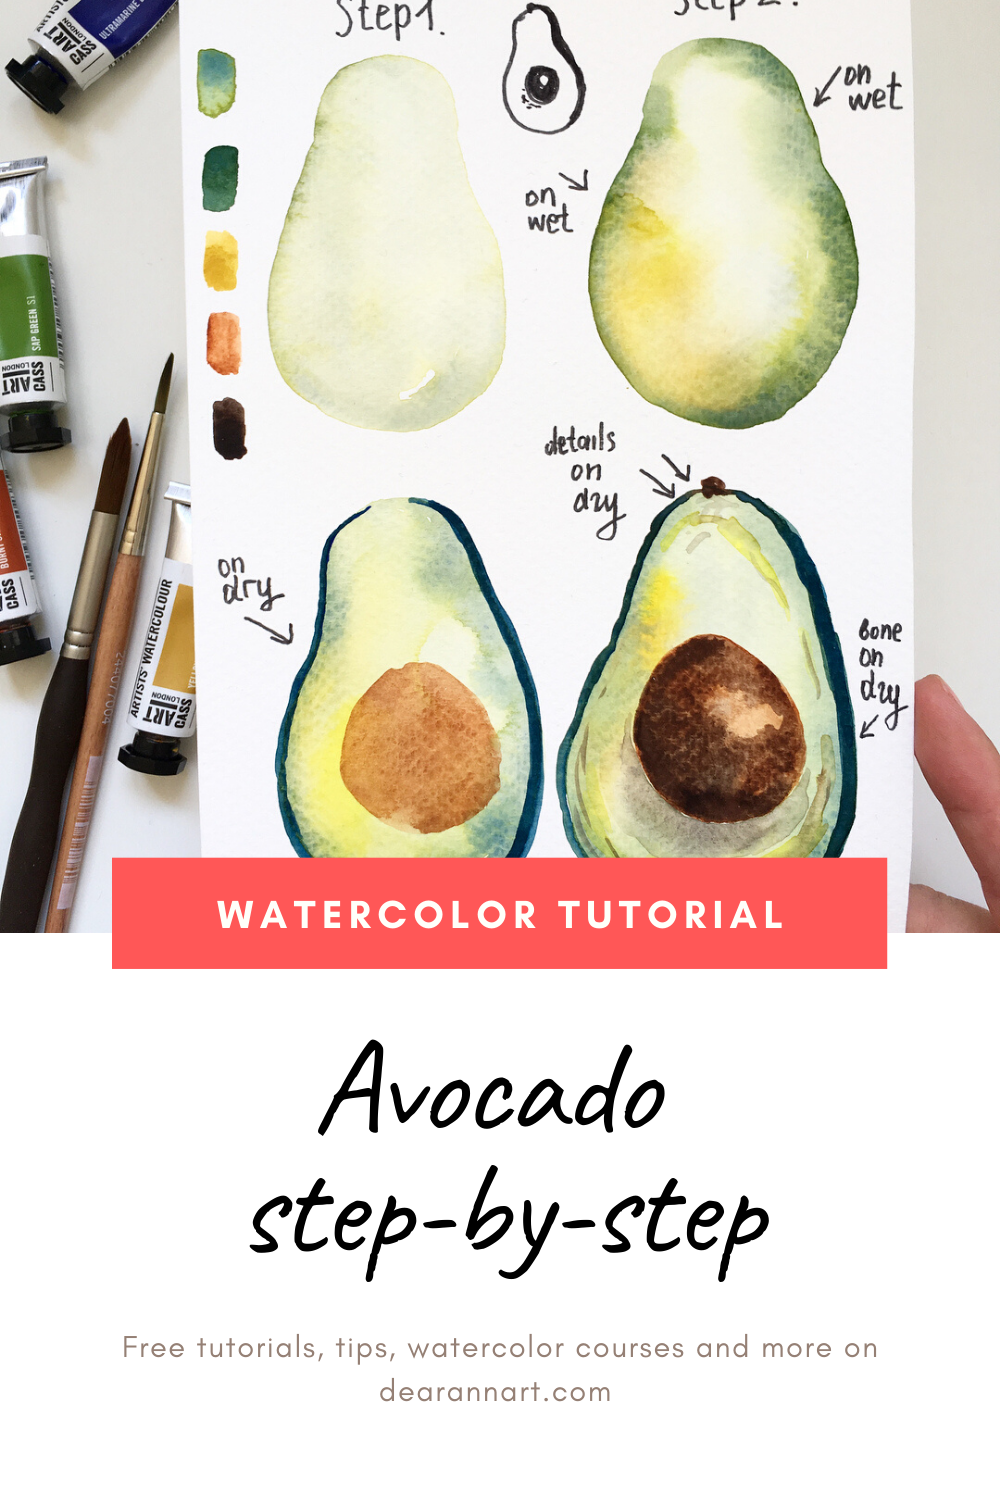 Painting Ideas Easy: Paint an Avocado Tutorial